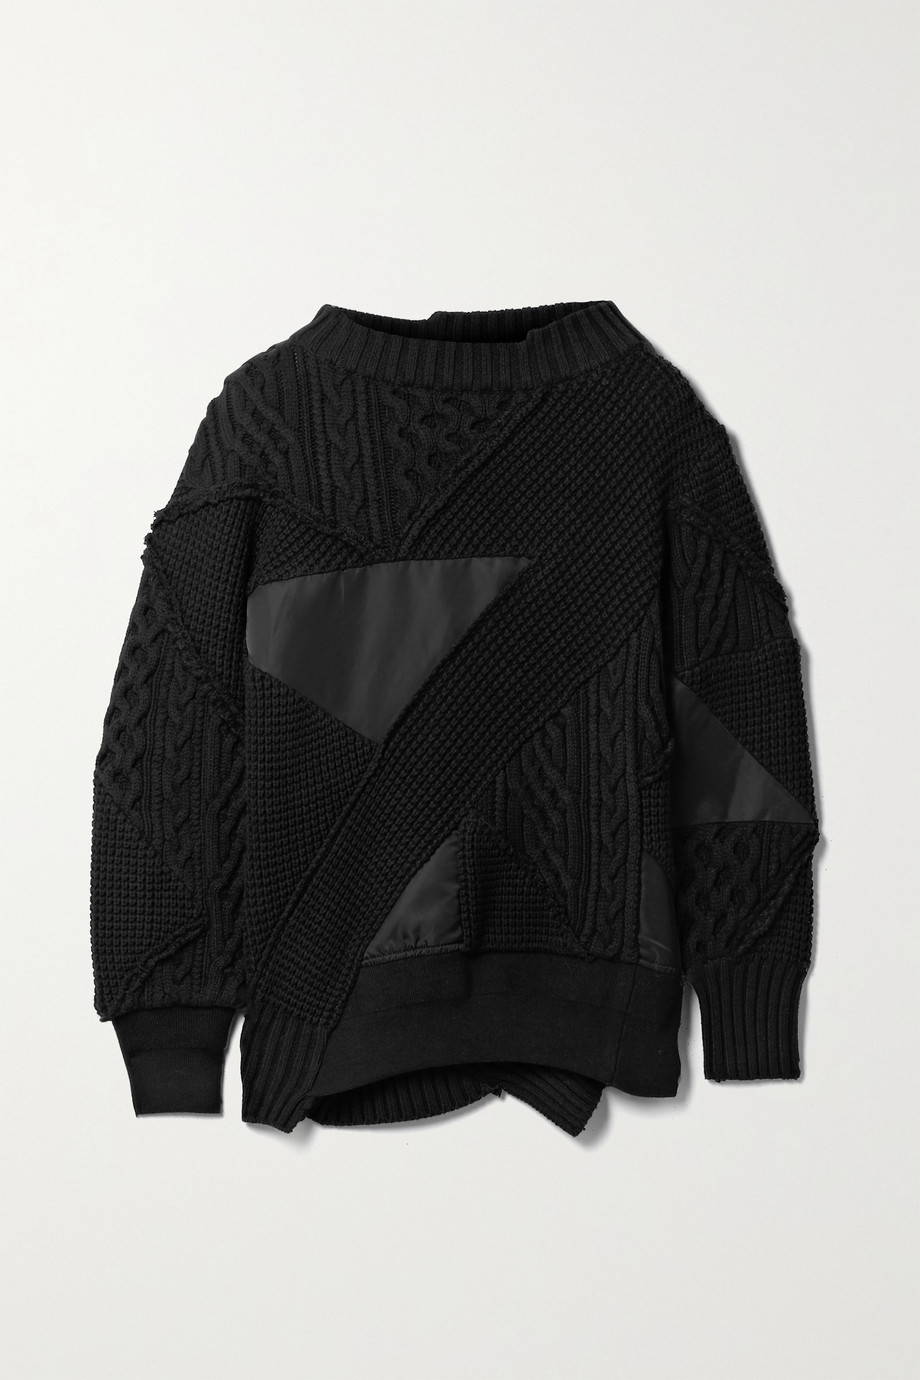 Sacai + Hank Willis Thomas paneled cotton-blend and shell sweater